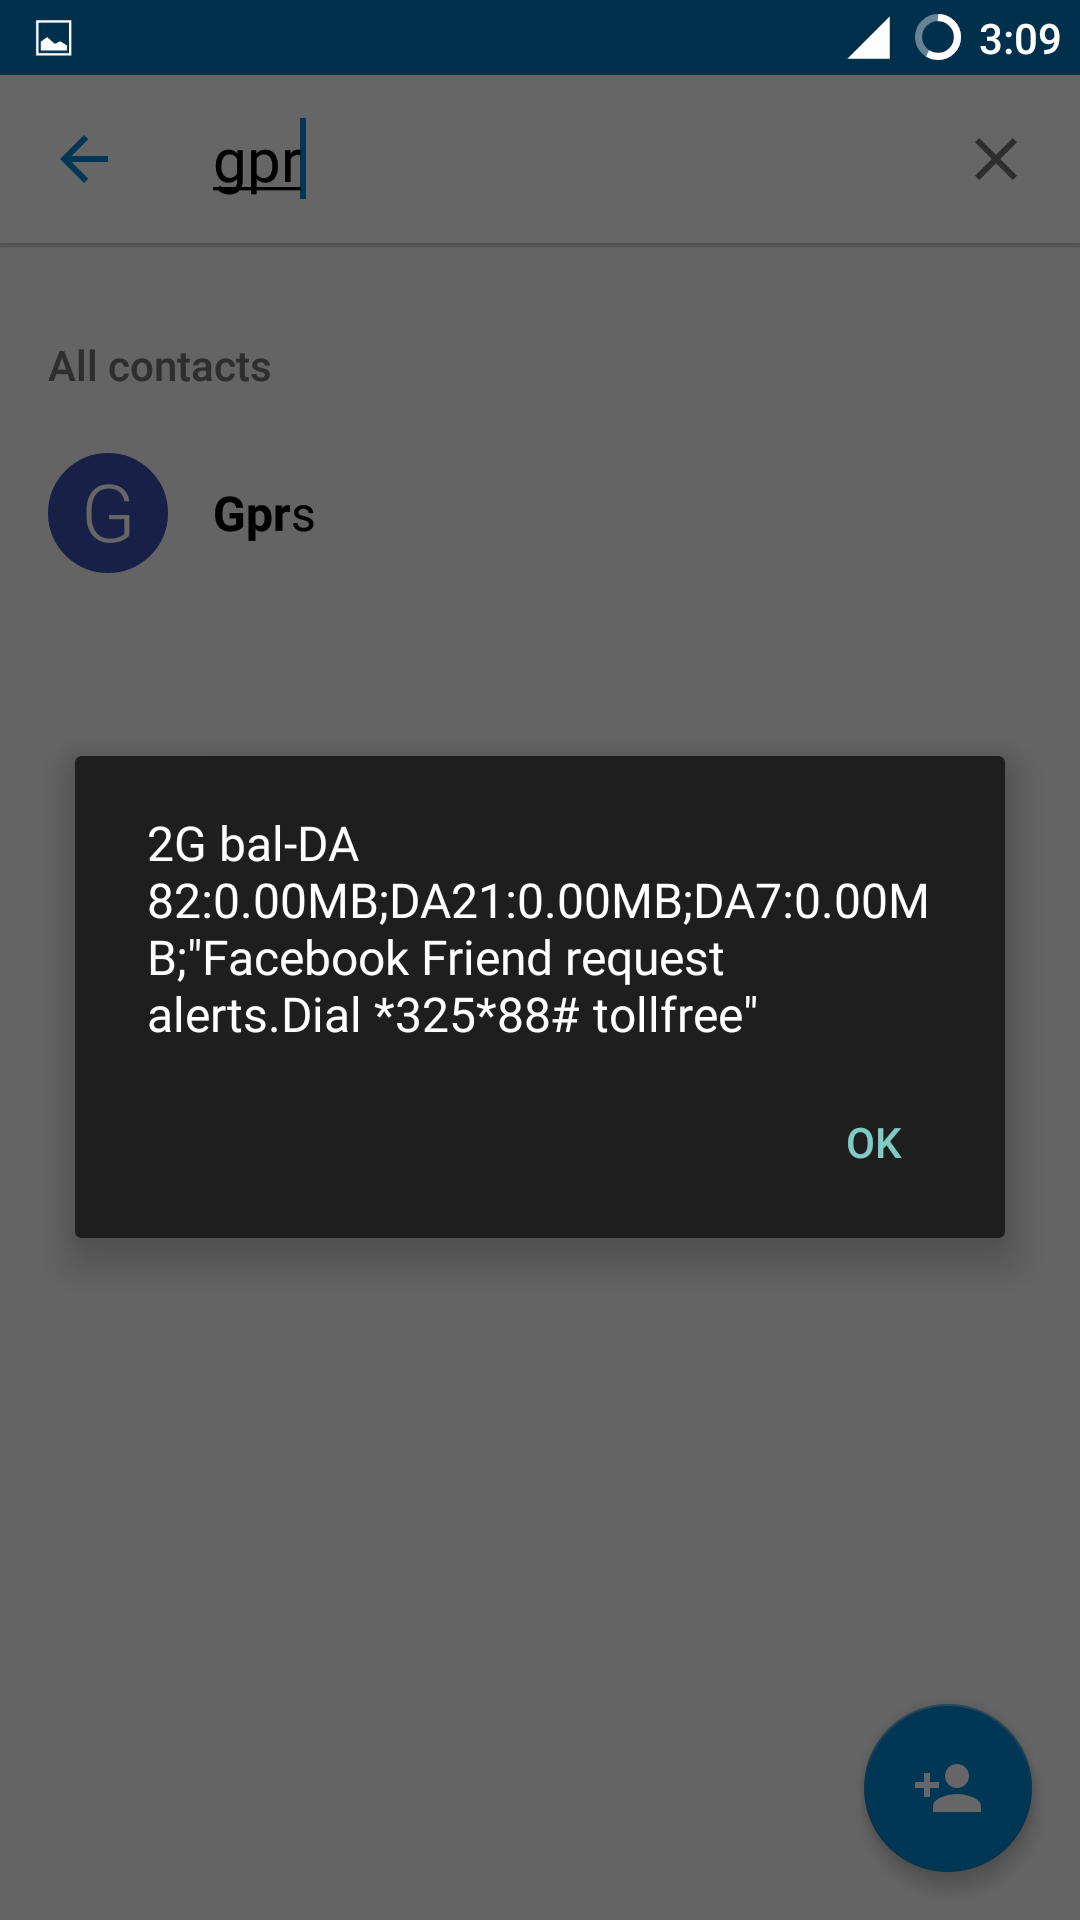 Can't Send or Receive SMS on OPX using Airtel 4G - OnePlus